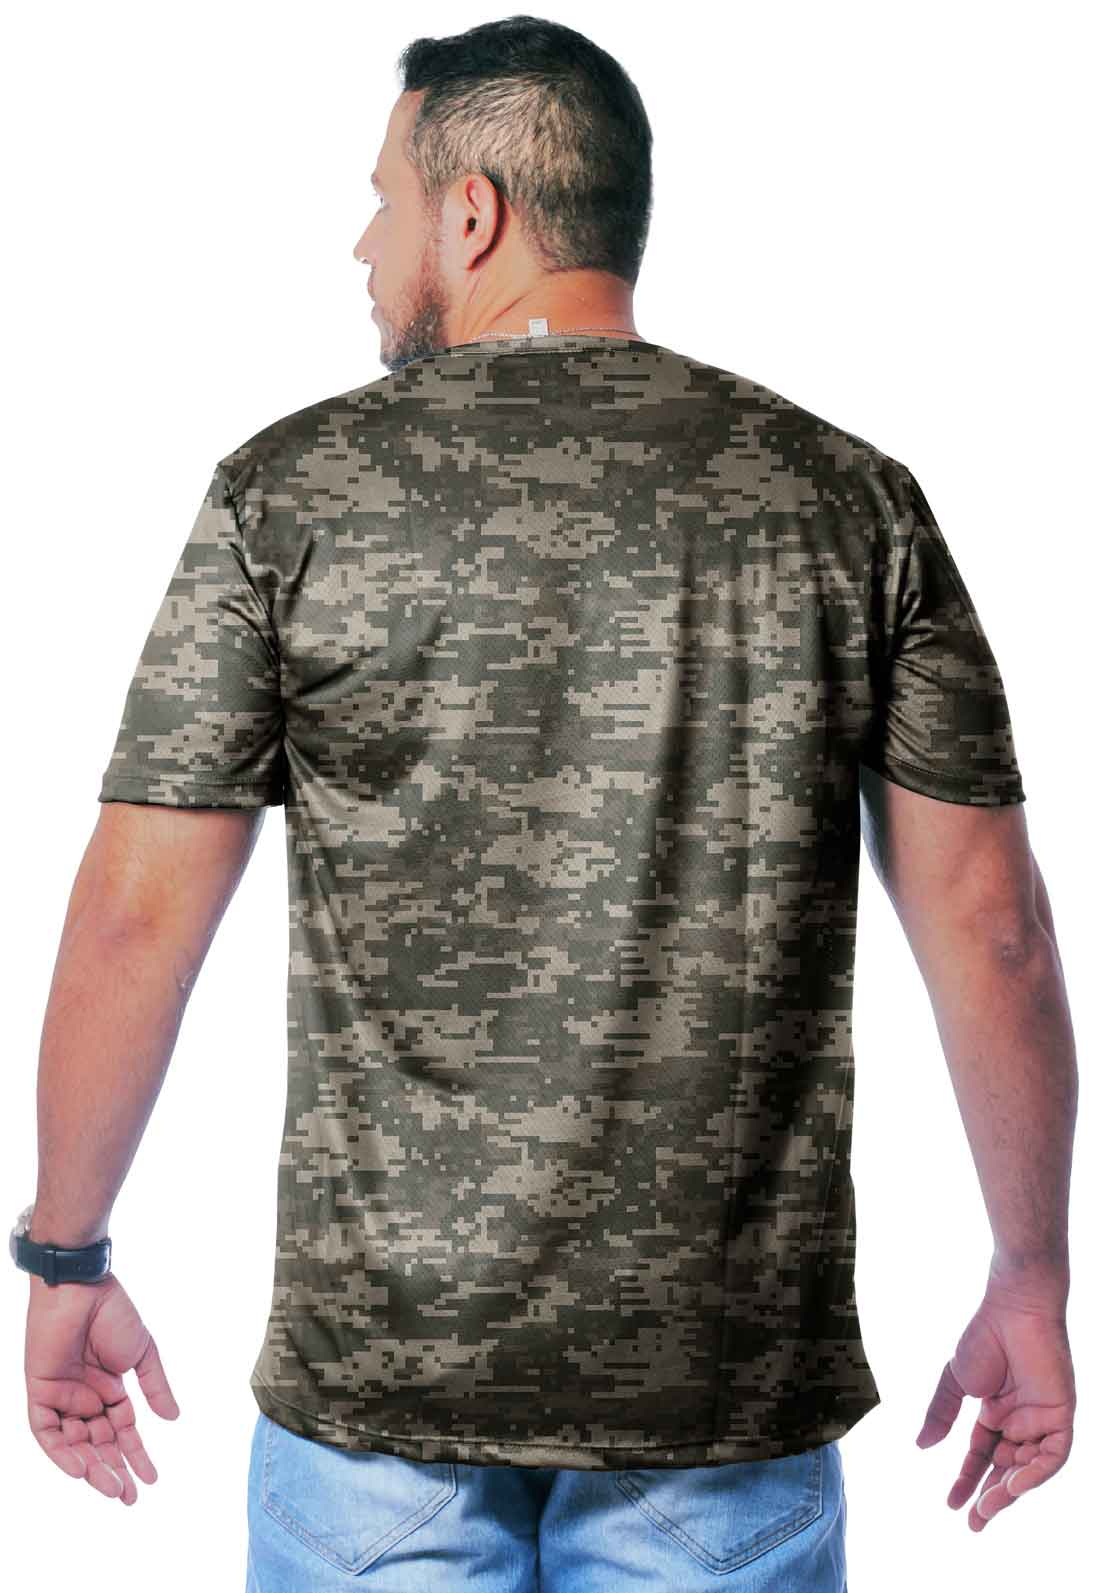 CAMISETA CAMUFLADA DIGITAL ACU MANGA CURTA MASCULINA  - REAL HUNTER OUTDOORS